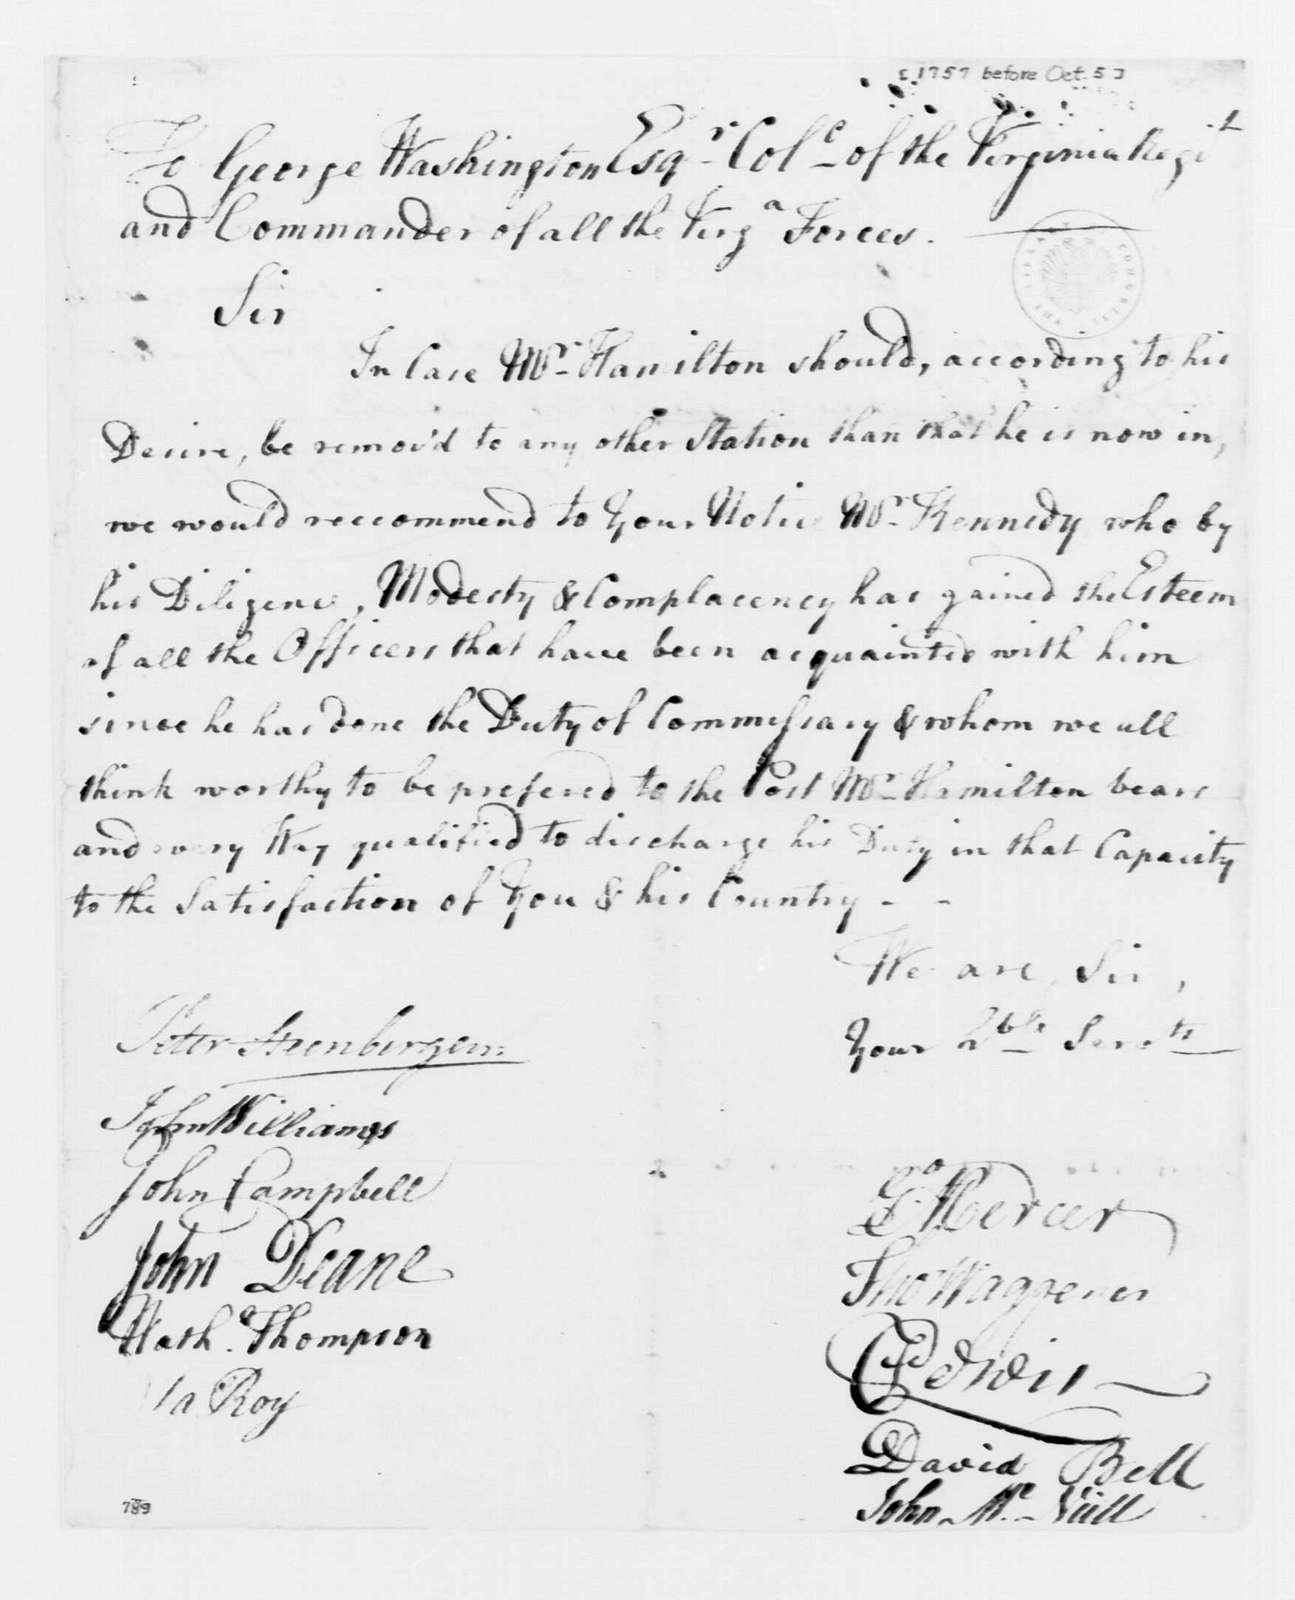 George Washington Papers, Series 4, General Correspondence: Virginia Regiment Officers to George Washington, October 5, 1757, Recommendation for David Kennedy